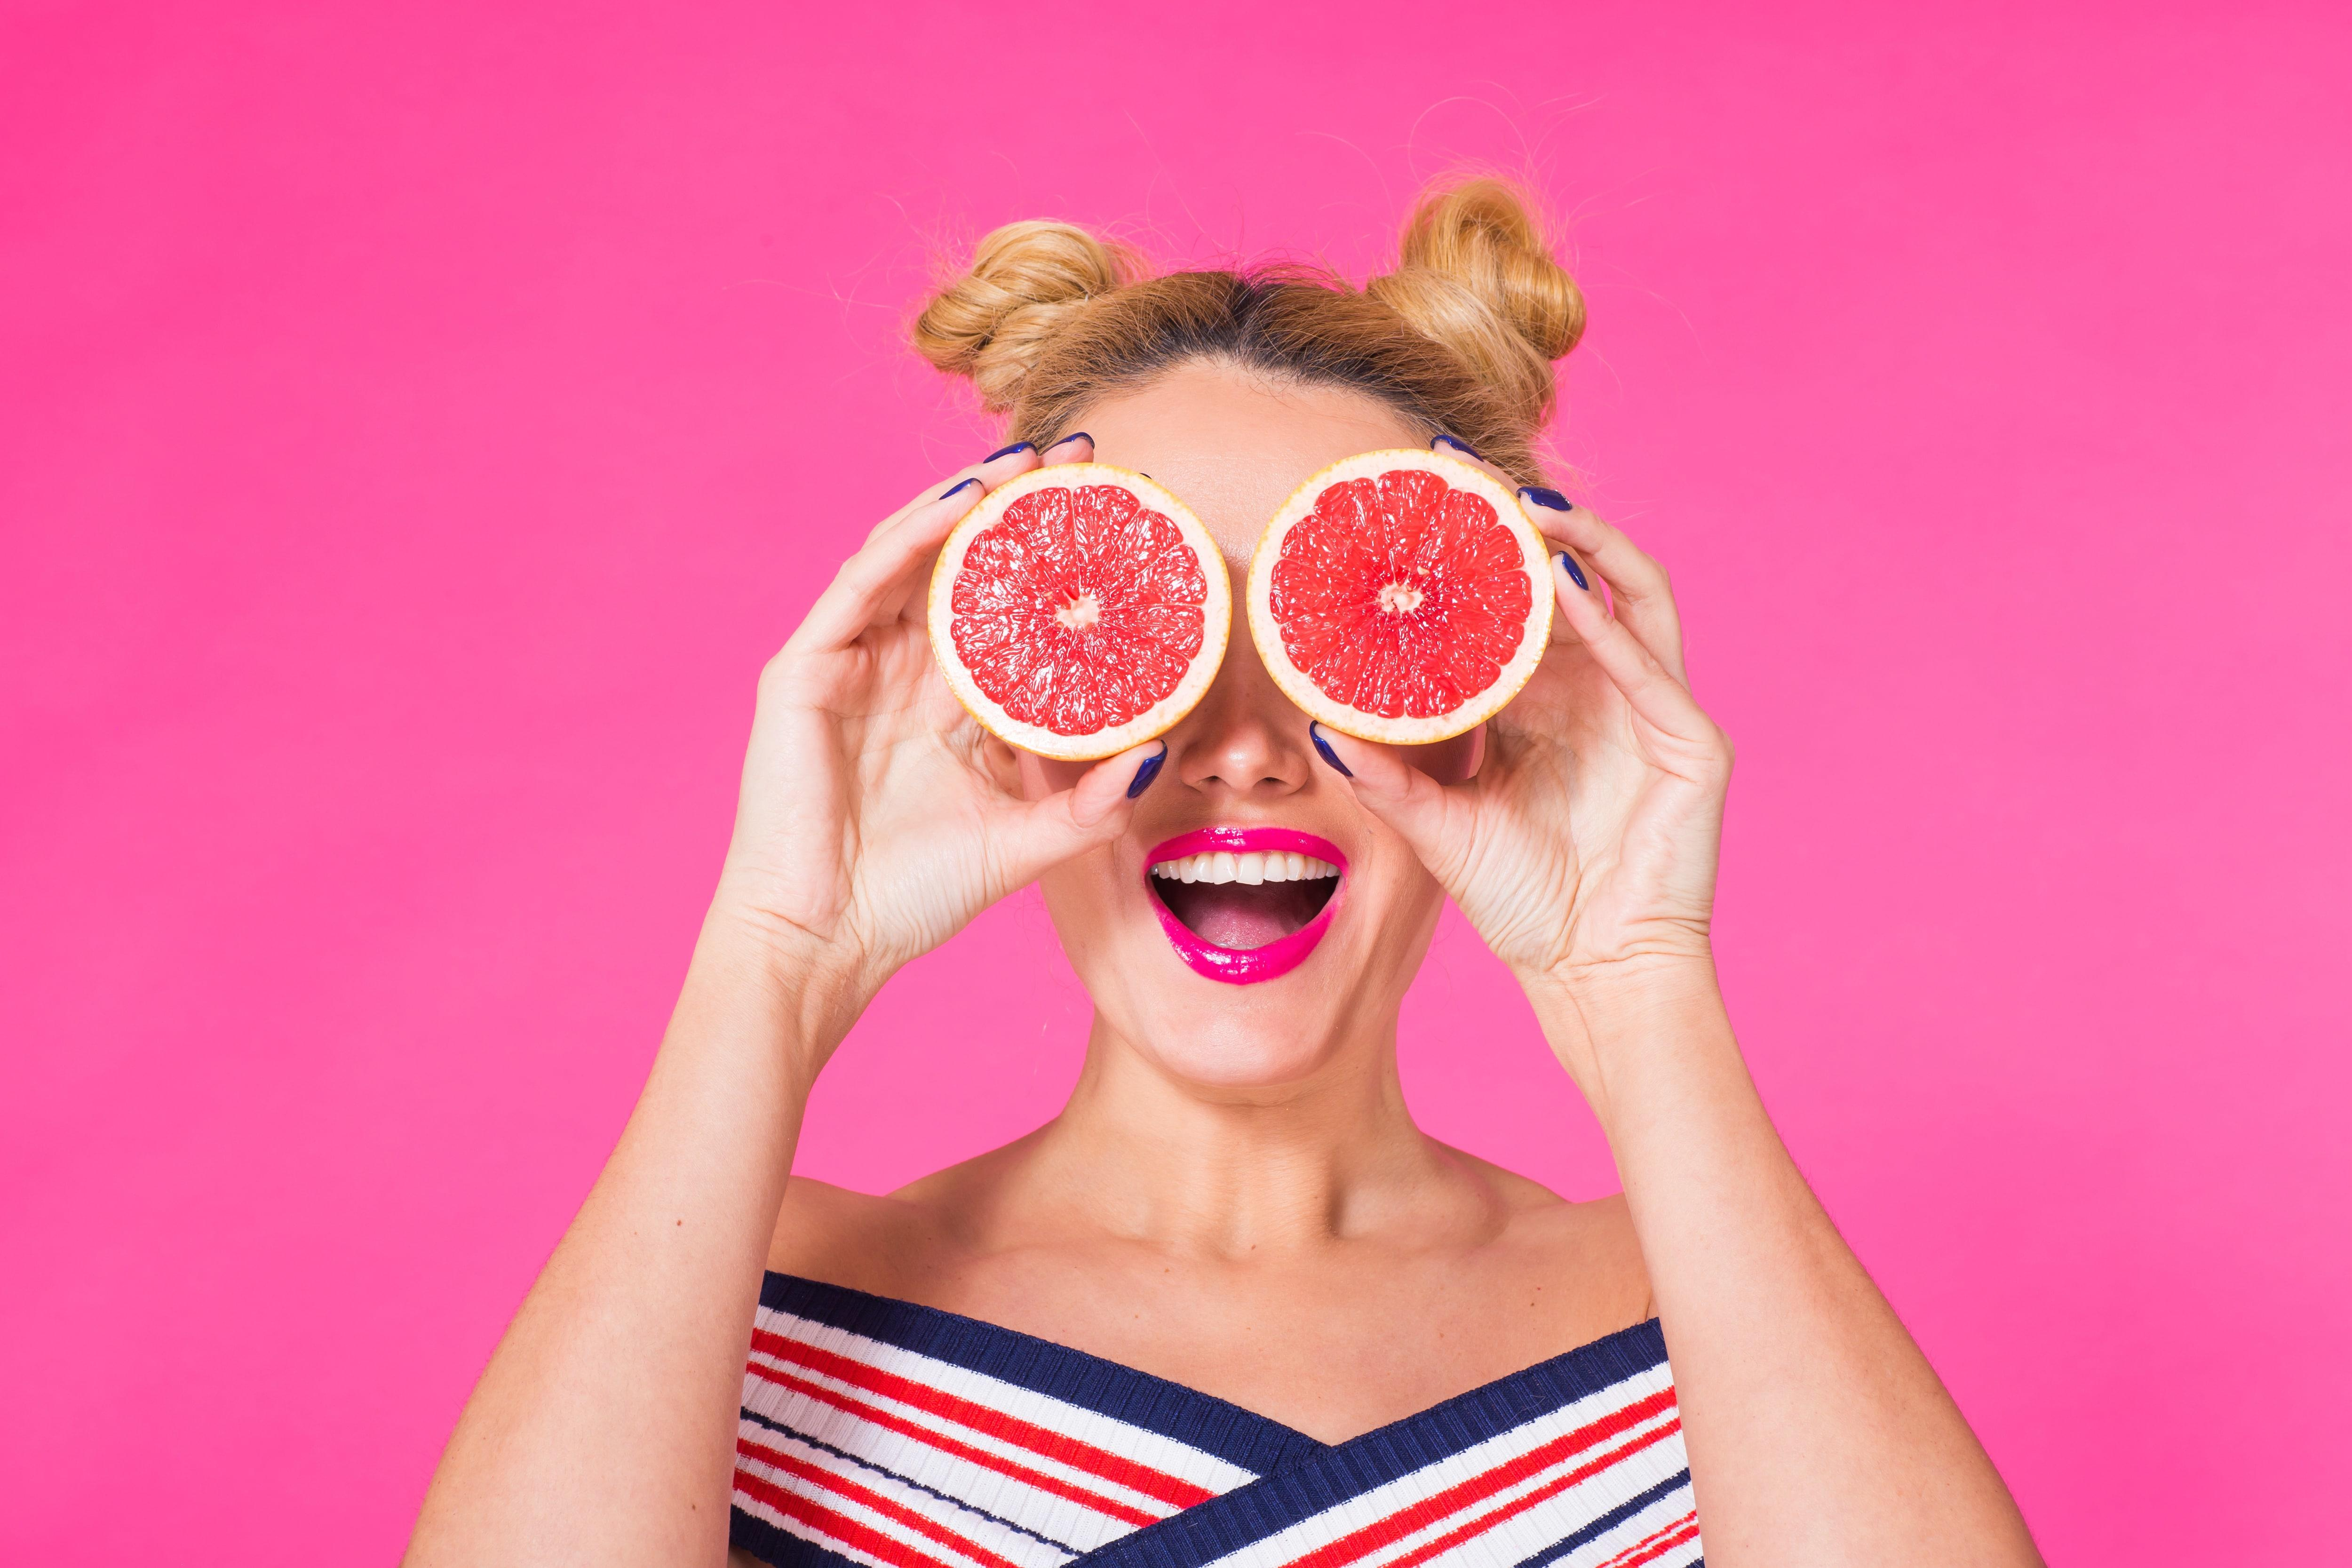 Fruits for healthy eyes